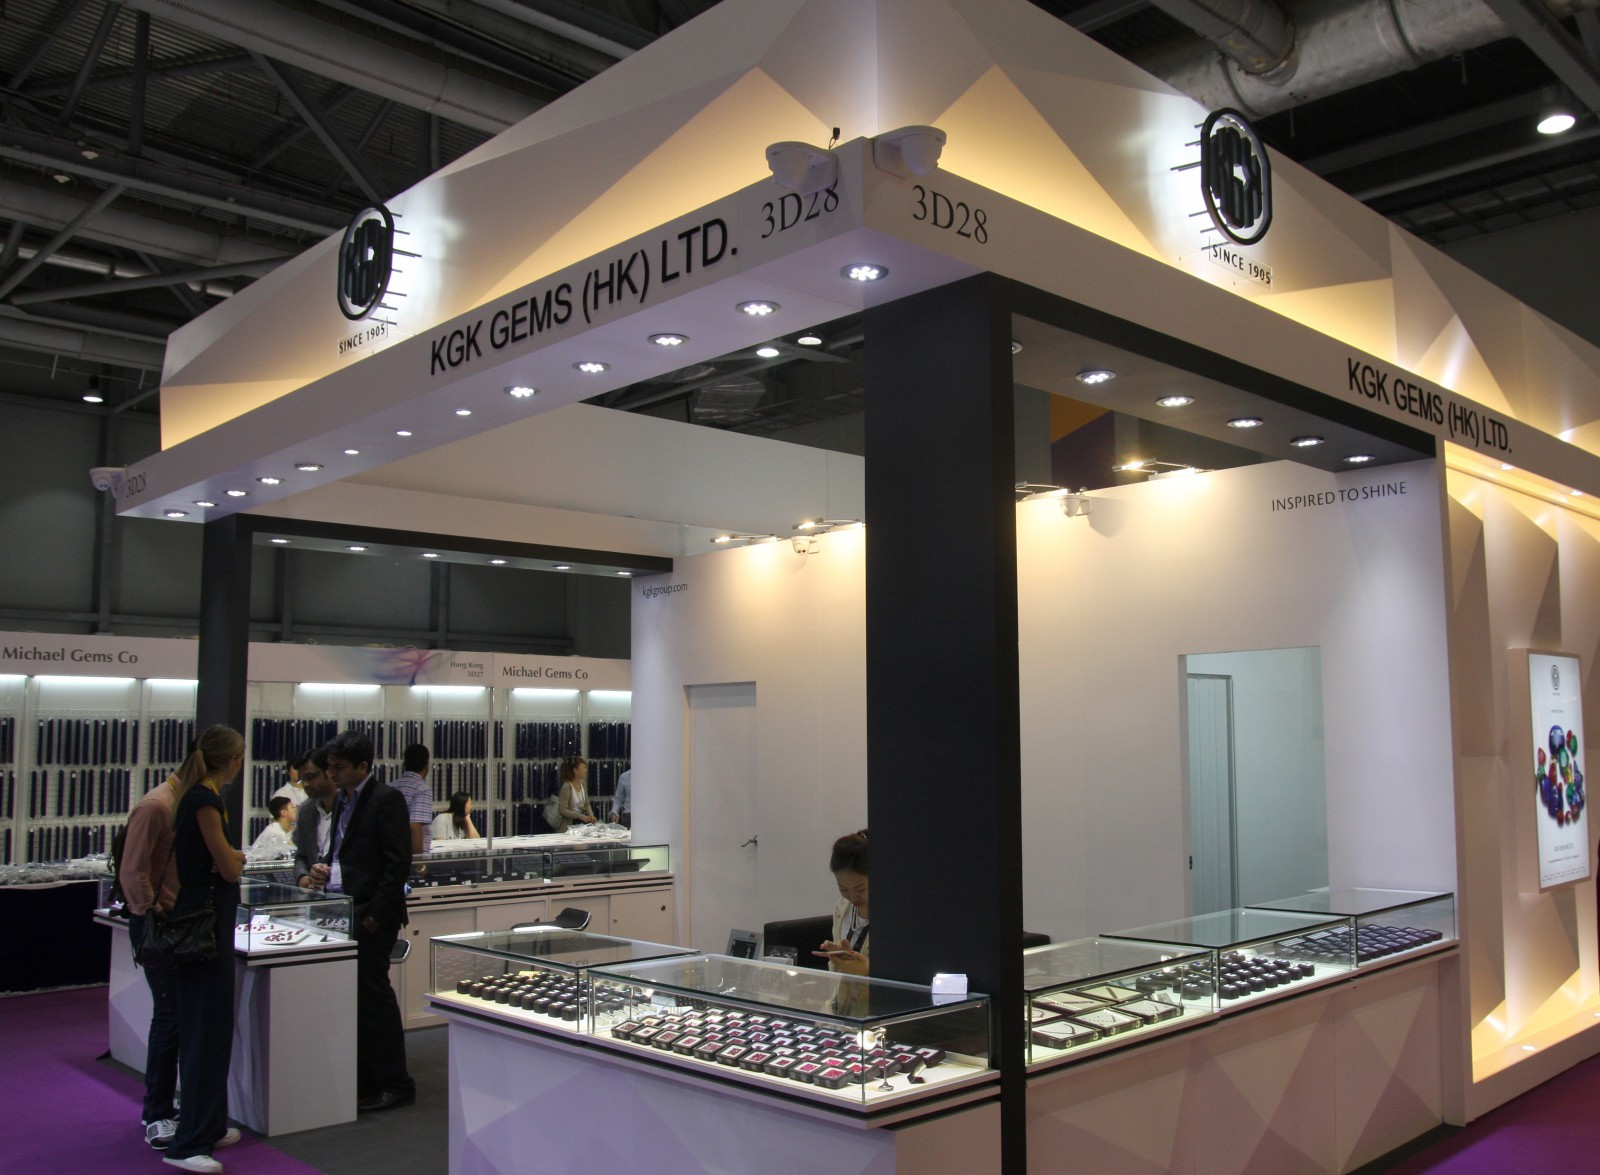 KGK Gems booth at Asiaworld - Expo Hong Kong Sep 2016